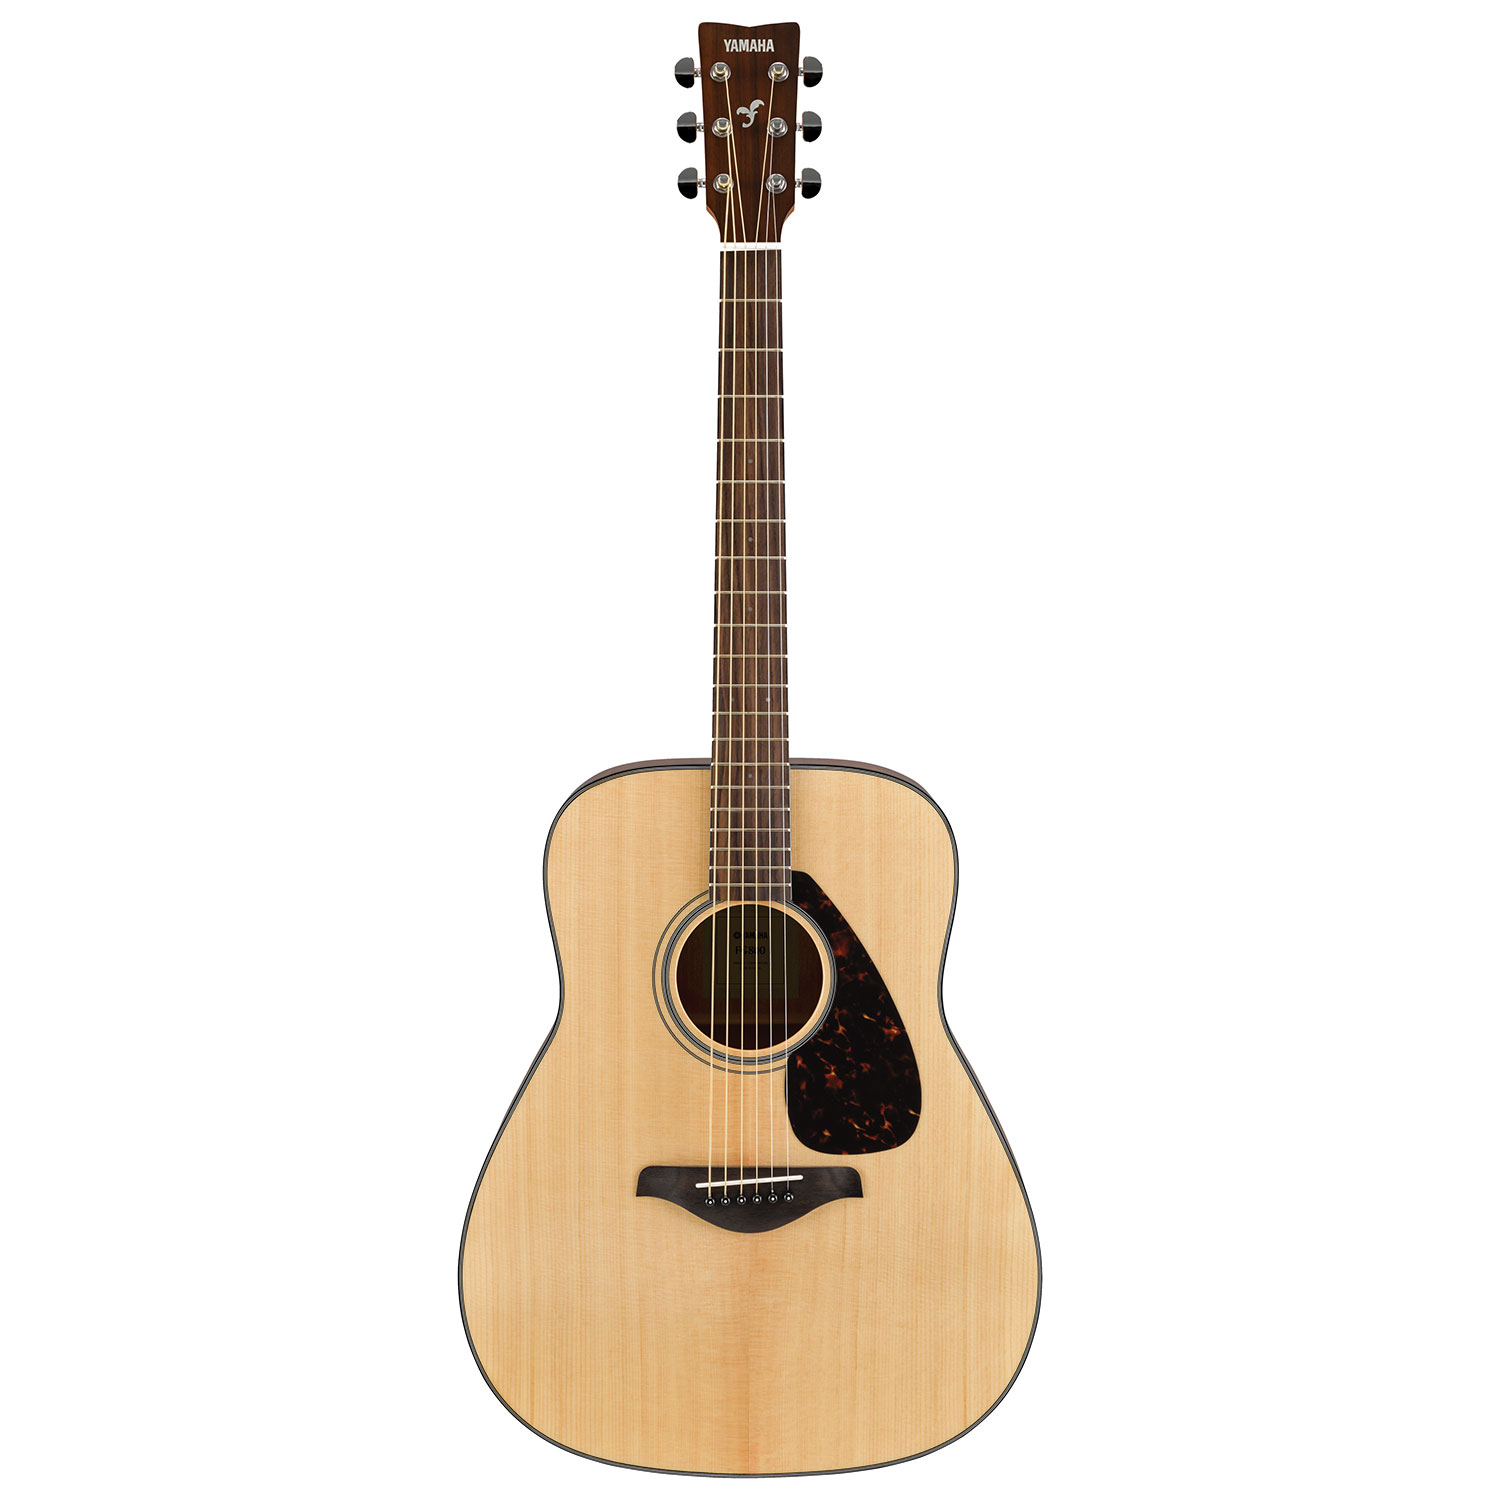 Yamaha Guitars For Sale In Canada